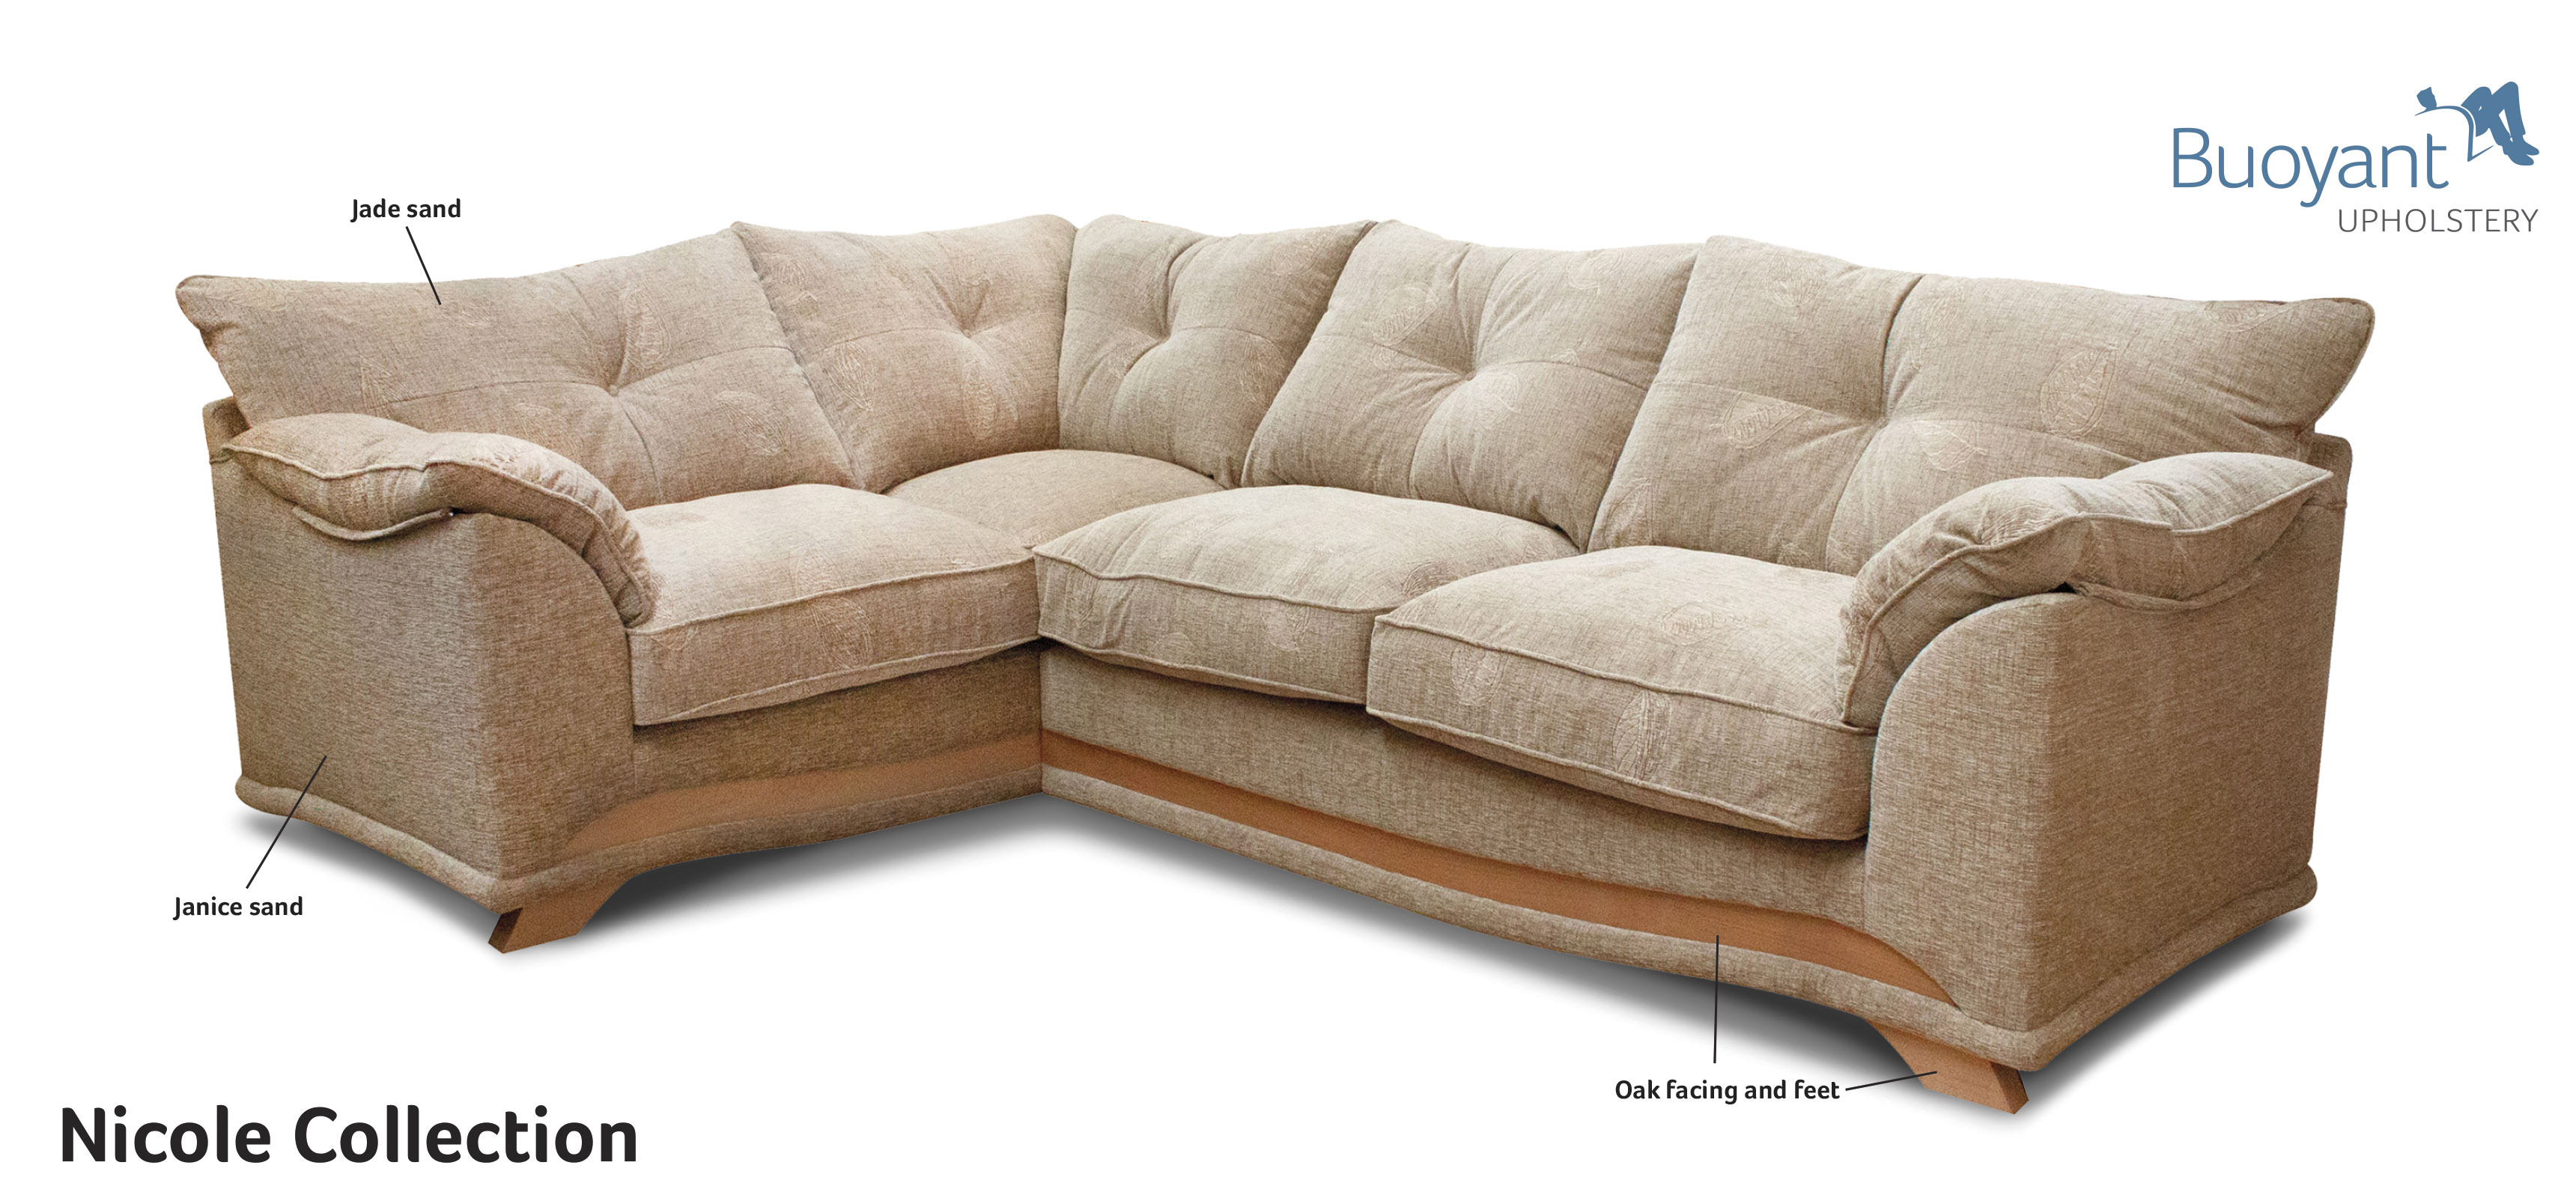 sofa warehouse leicestershire oxford room and board corner furniture store in leicester world of